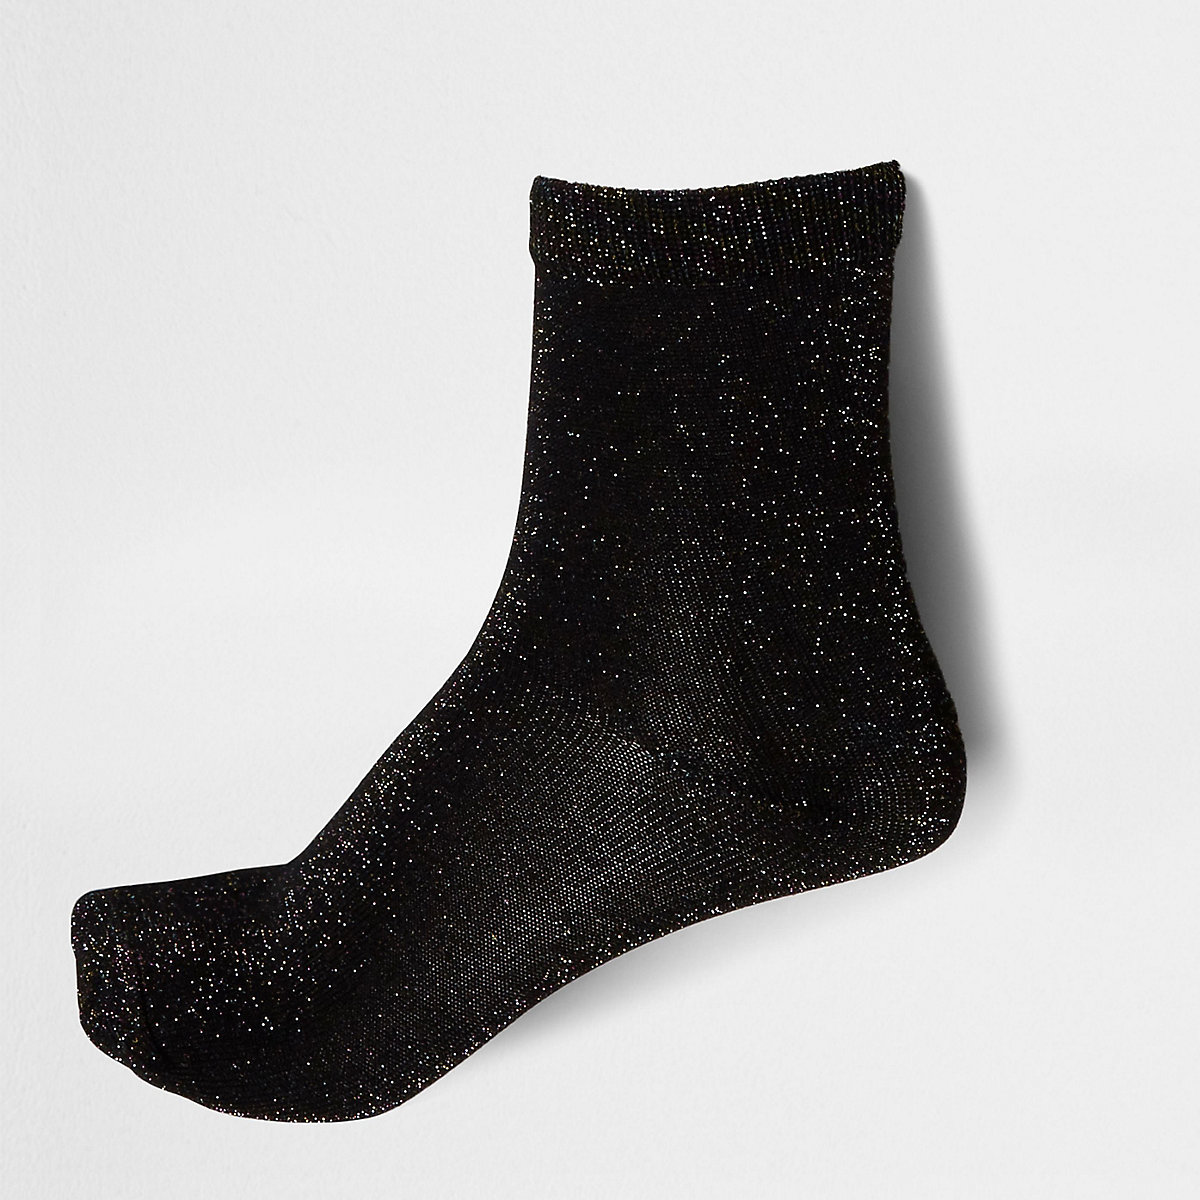 Black metallic ankle socks